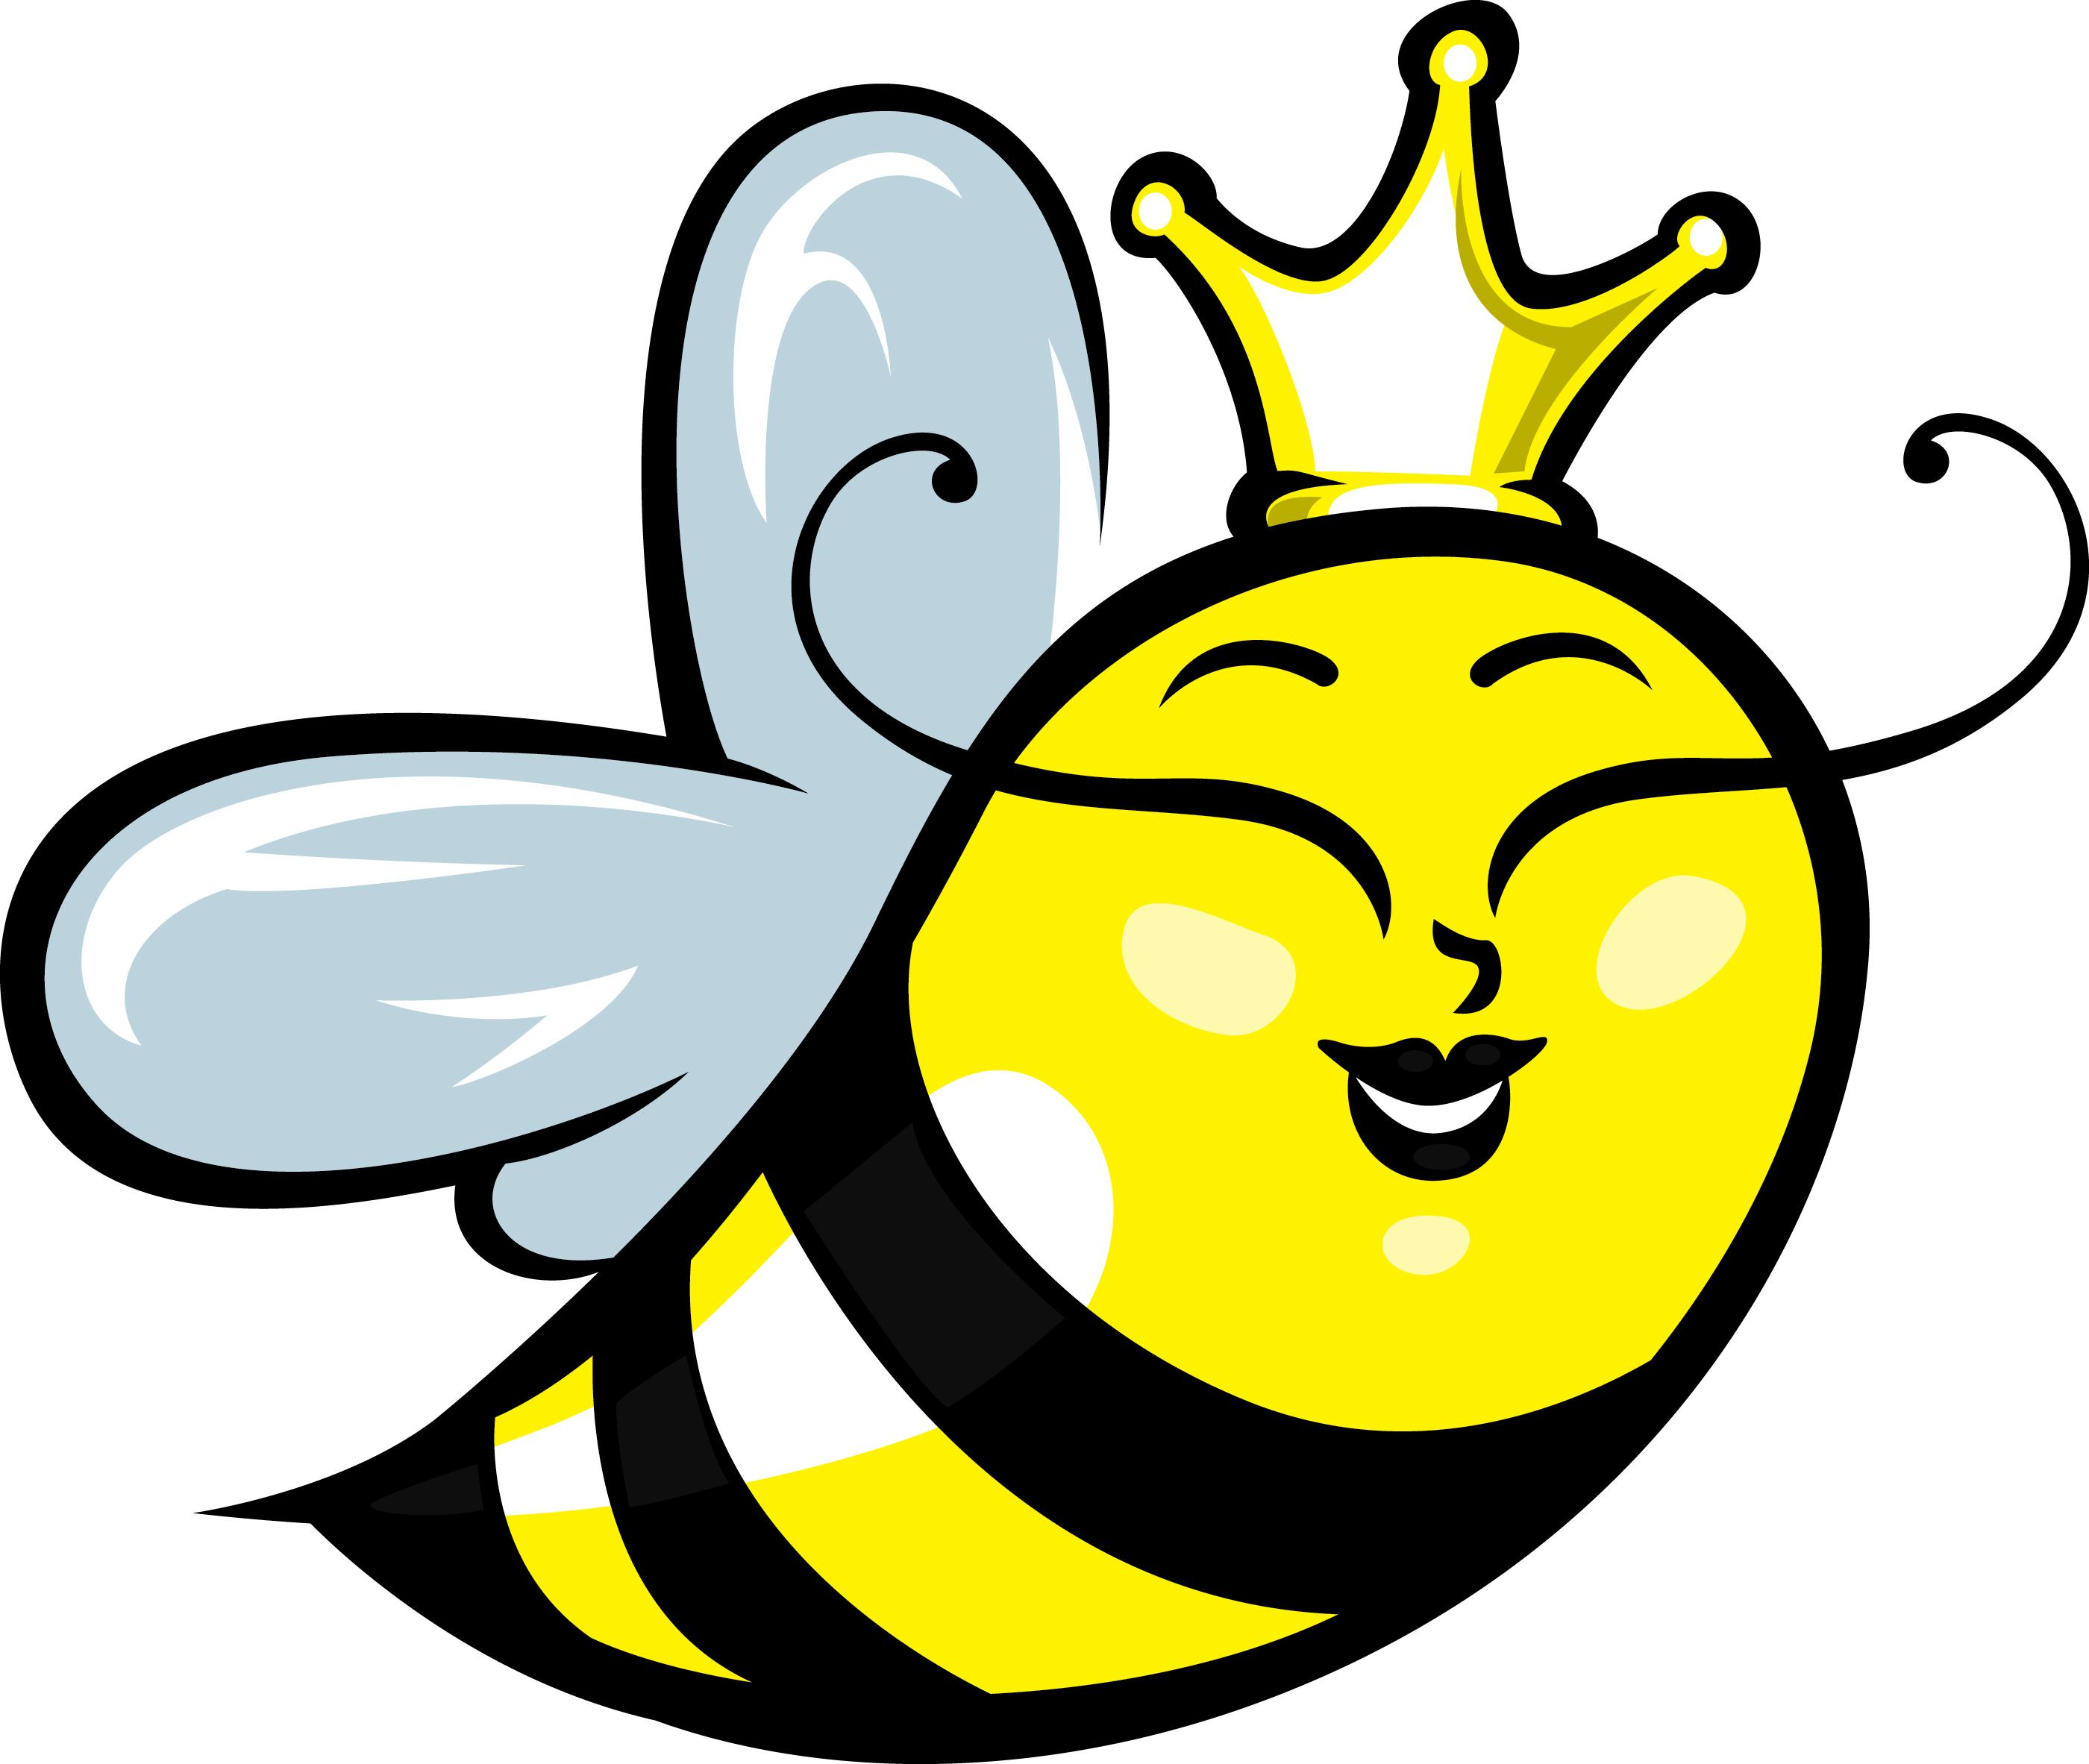 Cute bumble bee clipart free download best cute bumble bee clipart 2800x2365 top 75 bee clip art maxwellsz